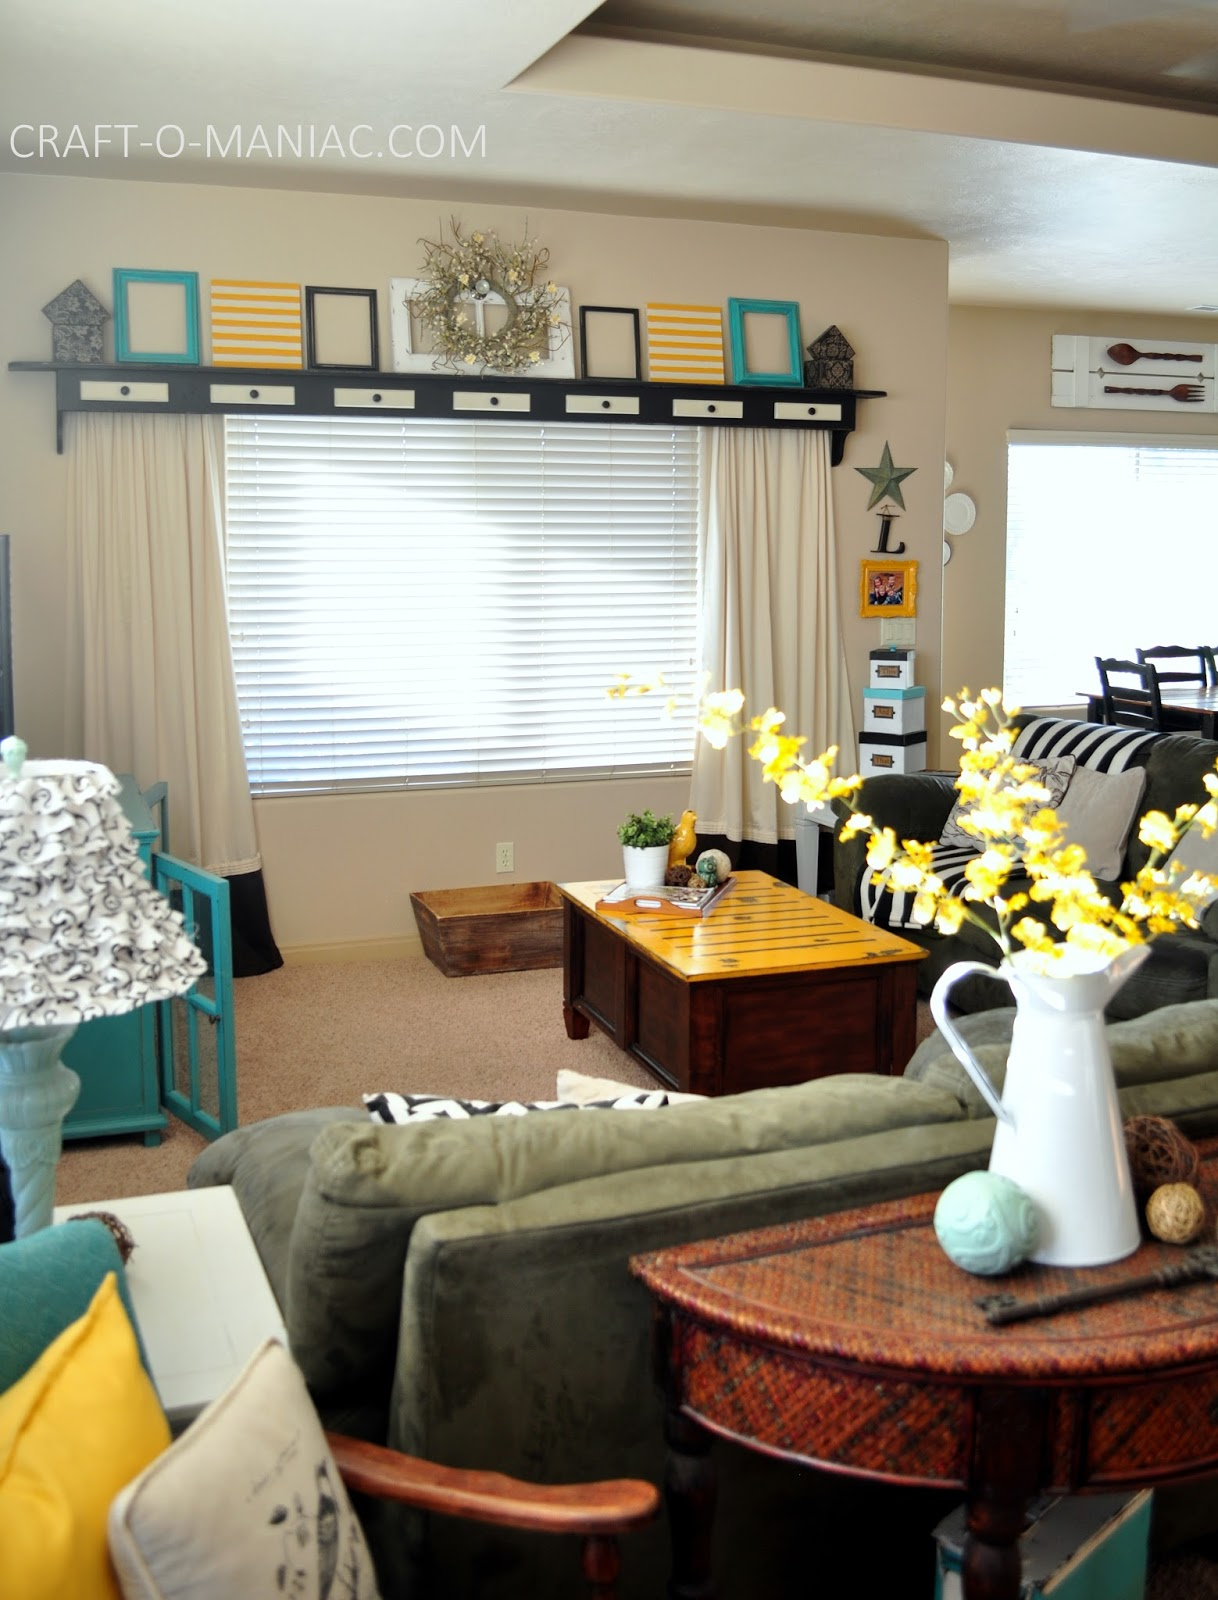 Home Decor My Turquoise and Yellow Family Room  CraftOManiac